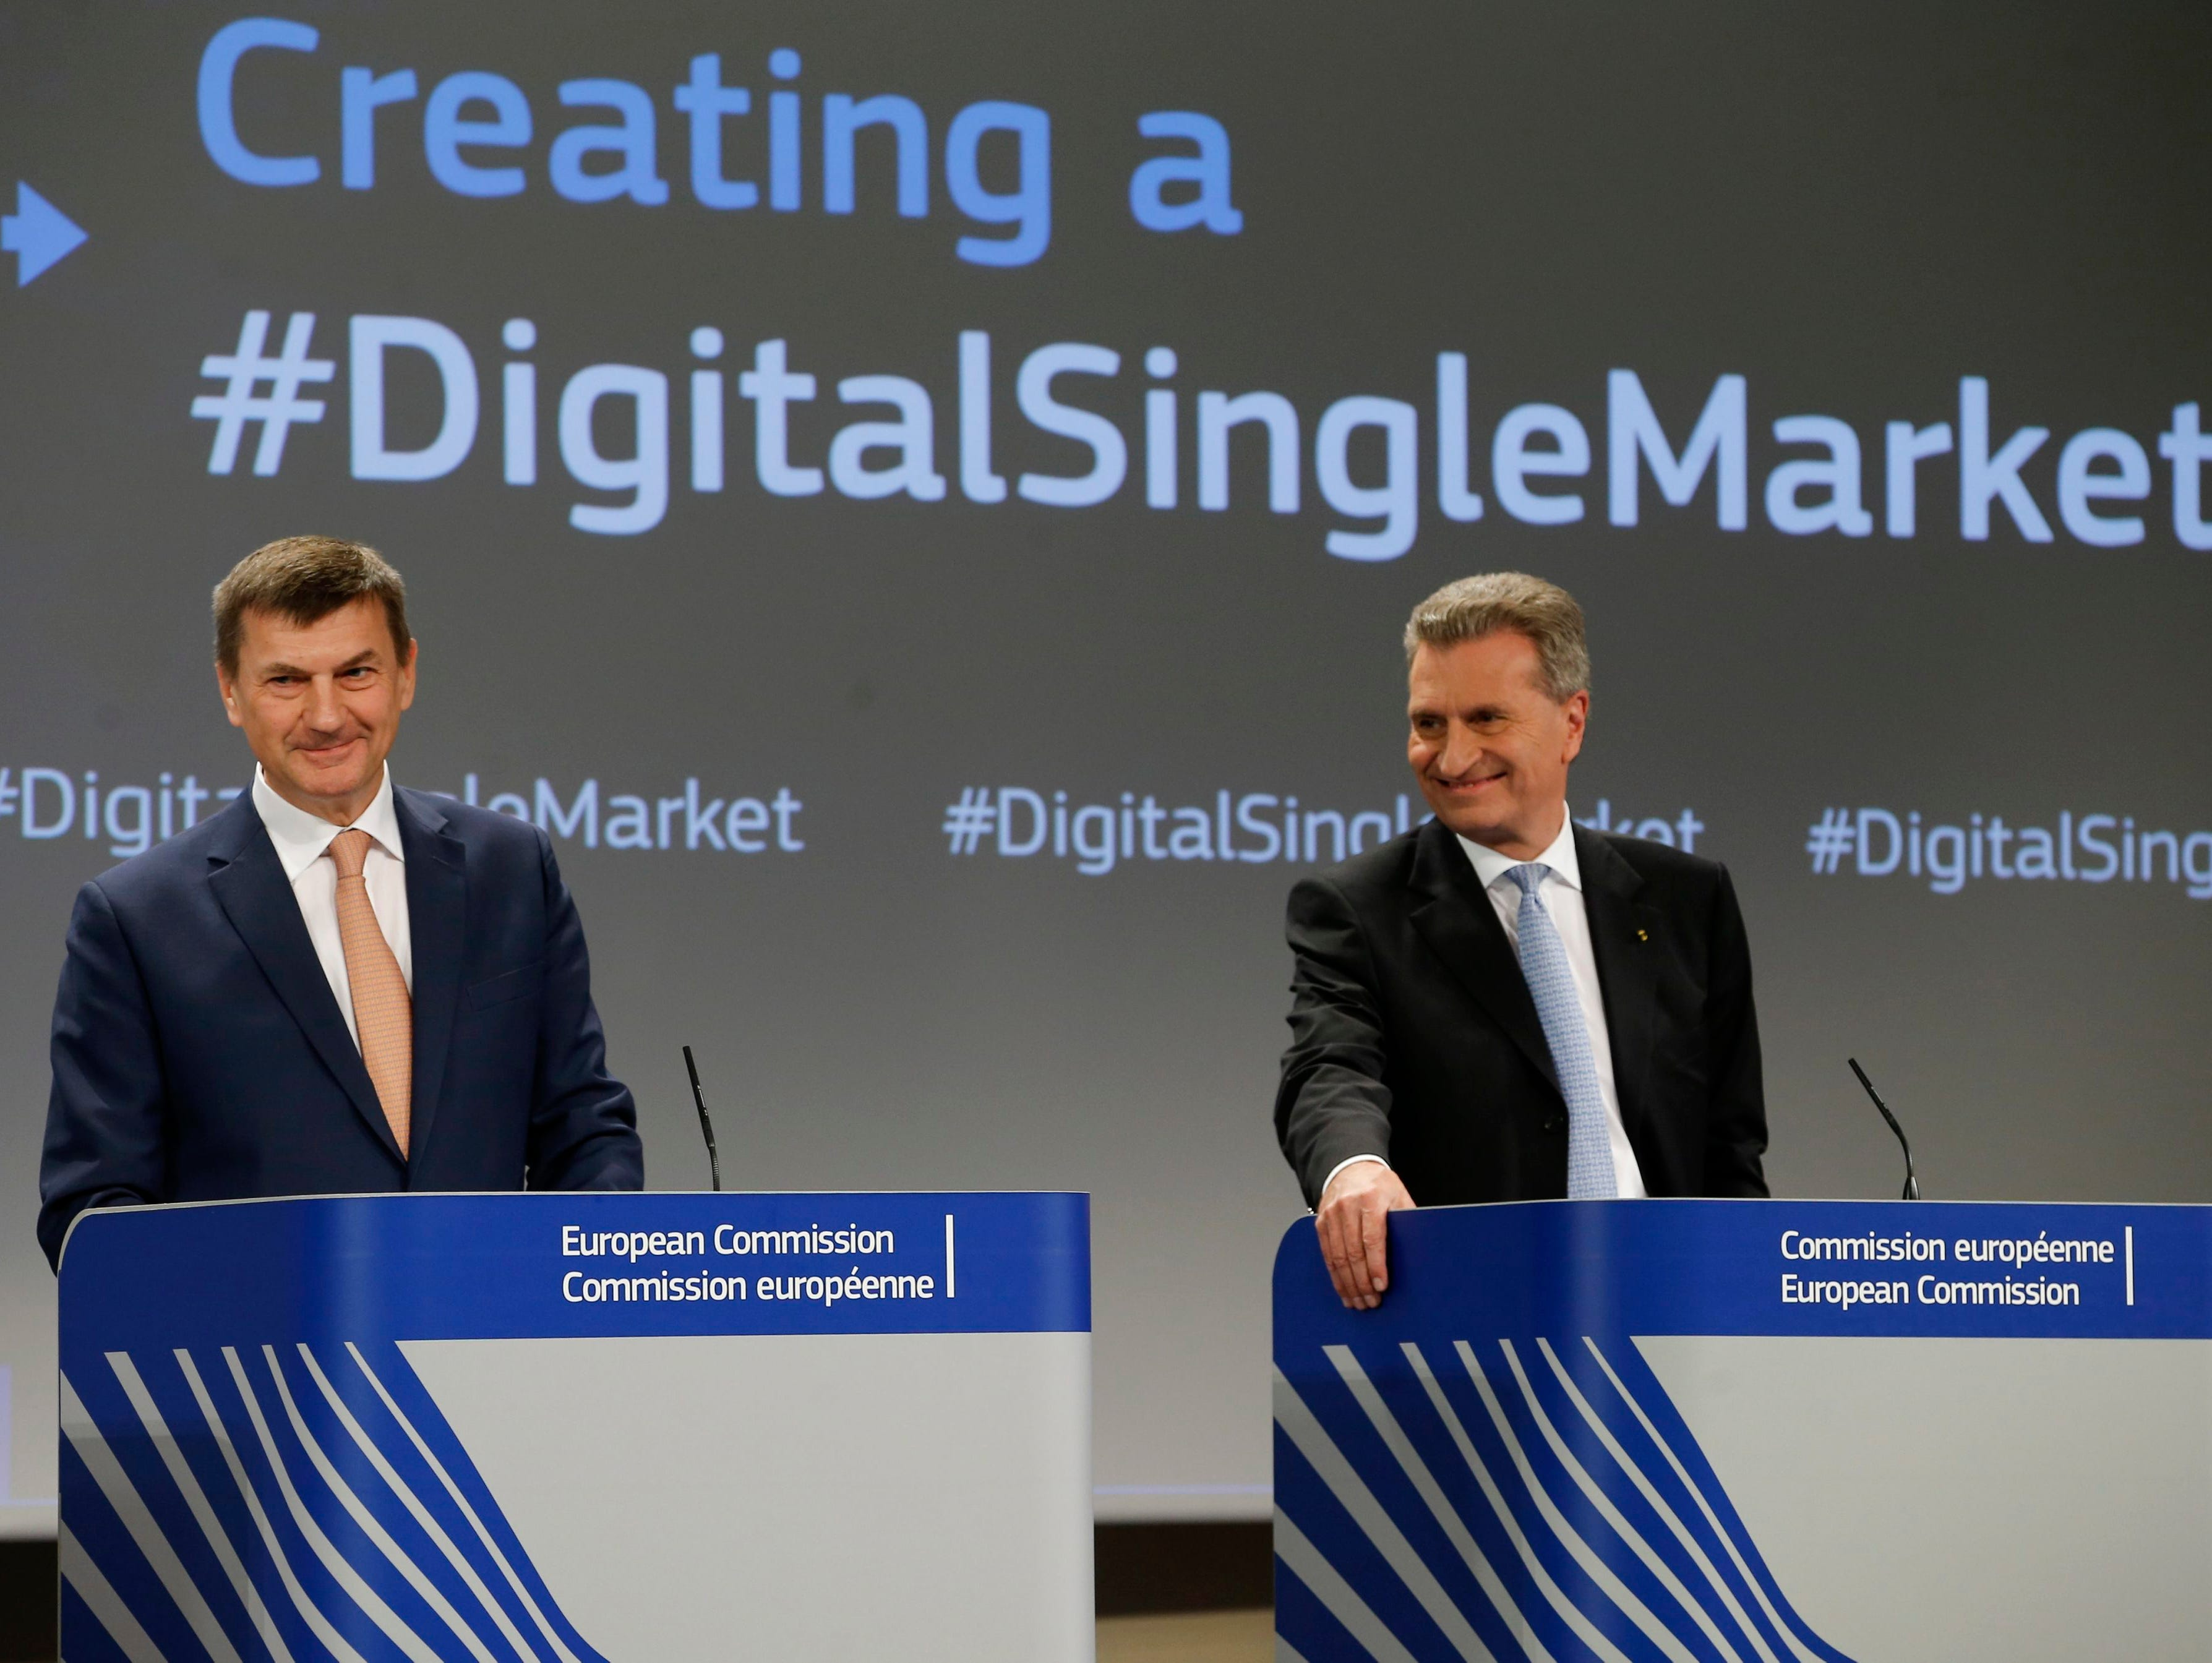 Vice President for the Digital Single Market of the European Commission Andrus Ansip, left, and EU Commissioner for the Digital Economy and Society Guenther Oettinger give a press conference on Digital Single Market Strategy at the European Commissio